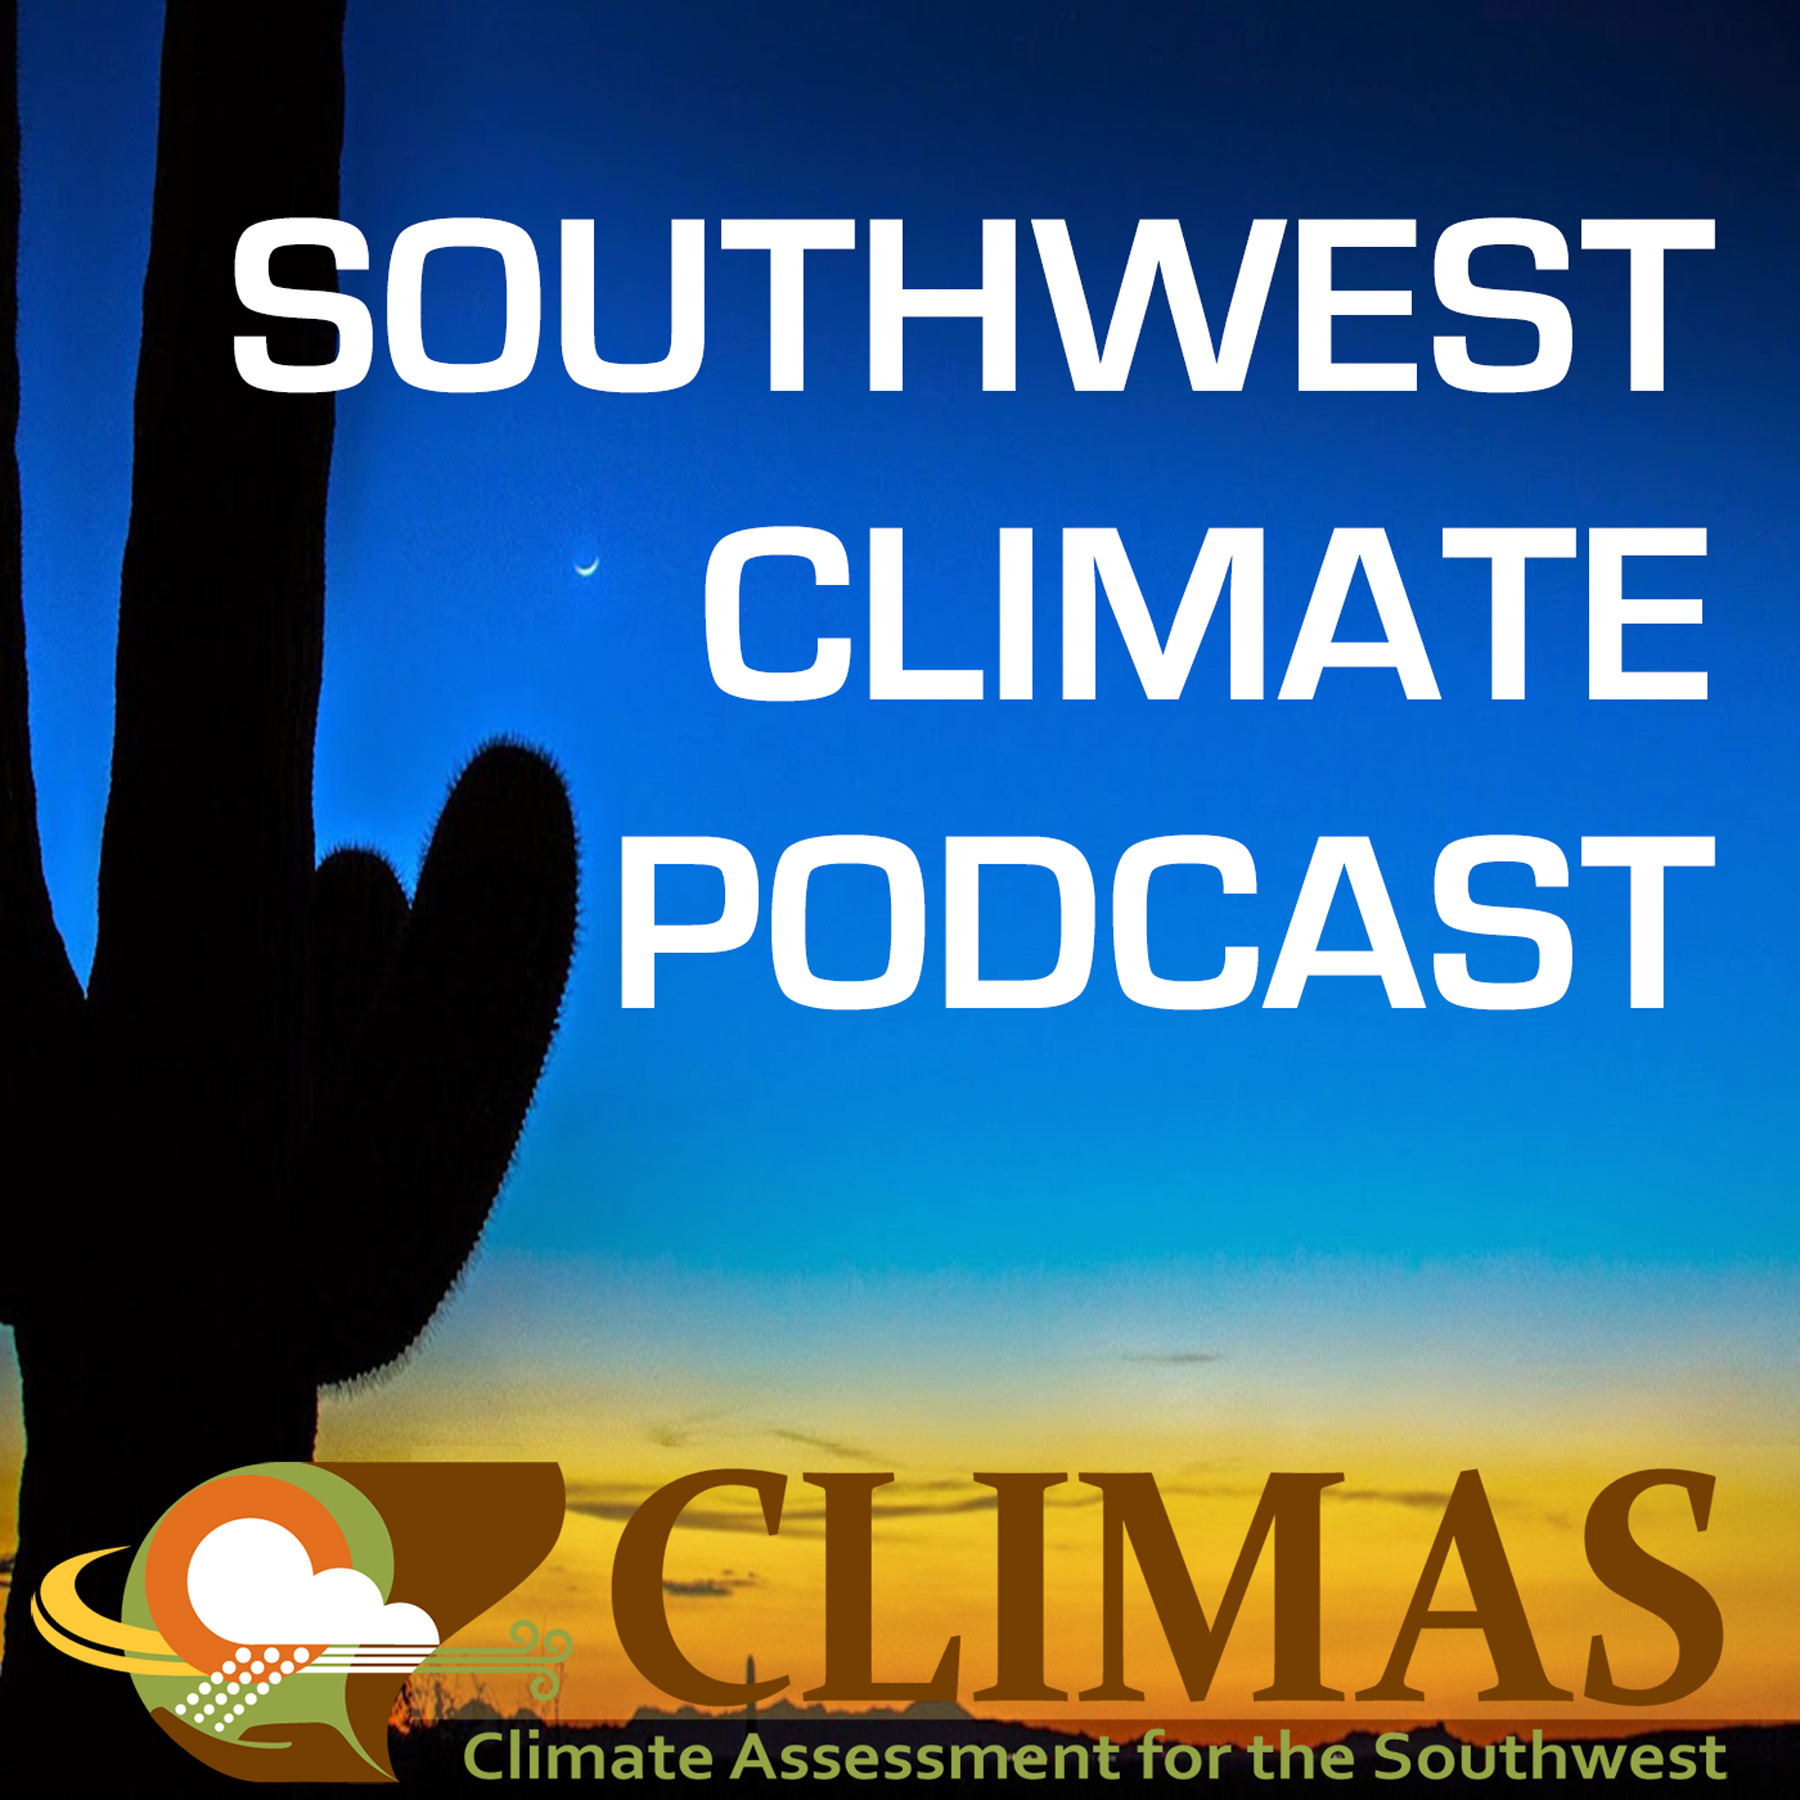 CLIMAS - Southwest Climate Podcast